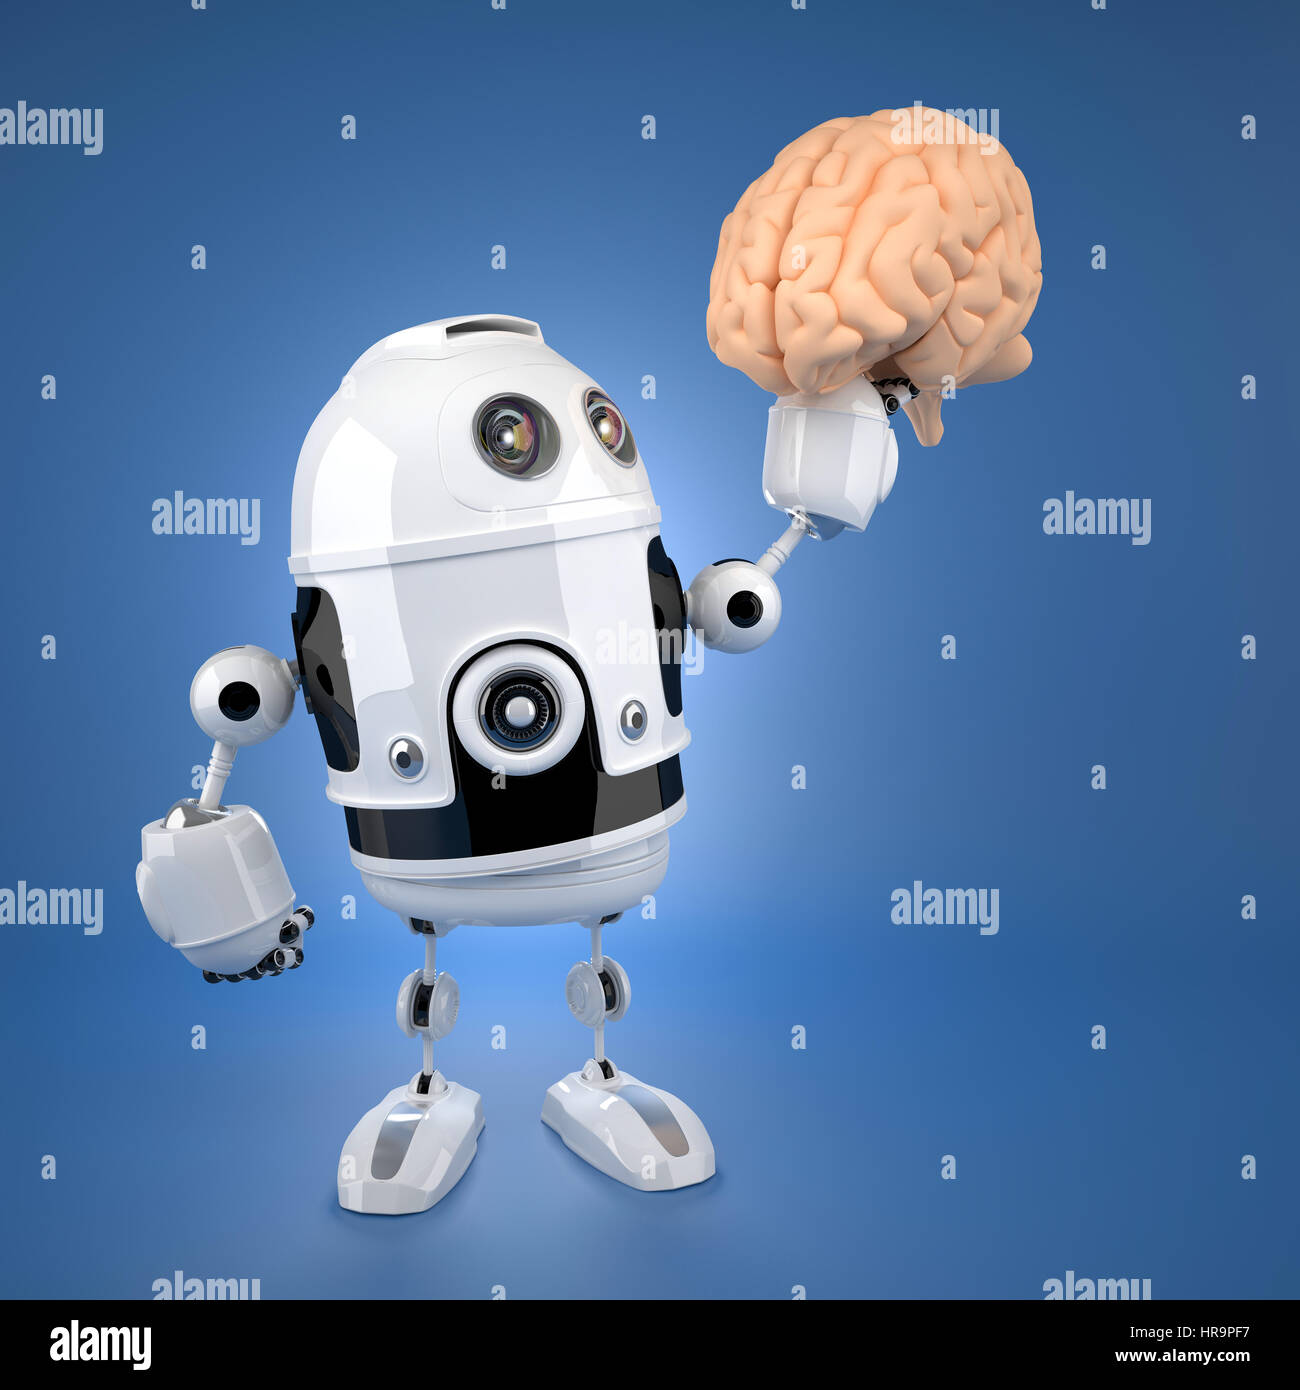 Android robot holding brain. Artificial intelligence concept Stock Photo